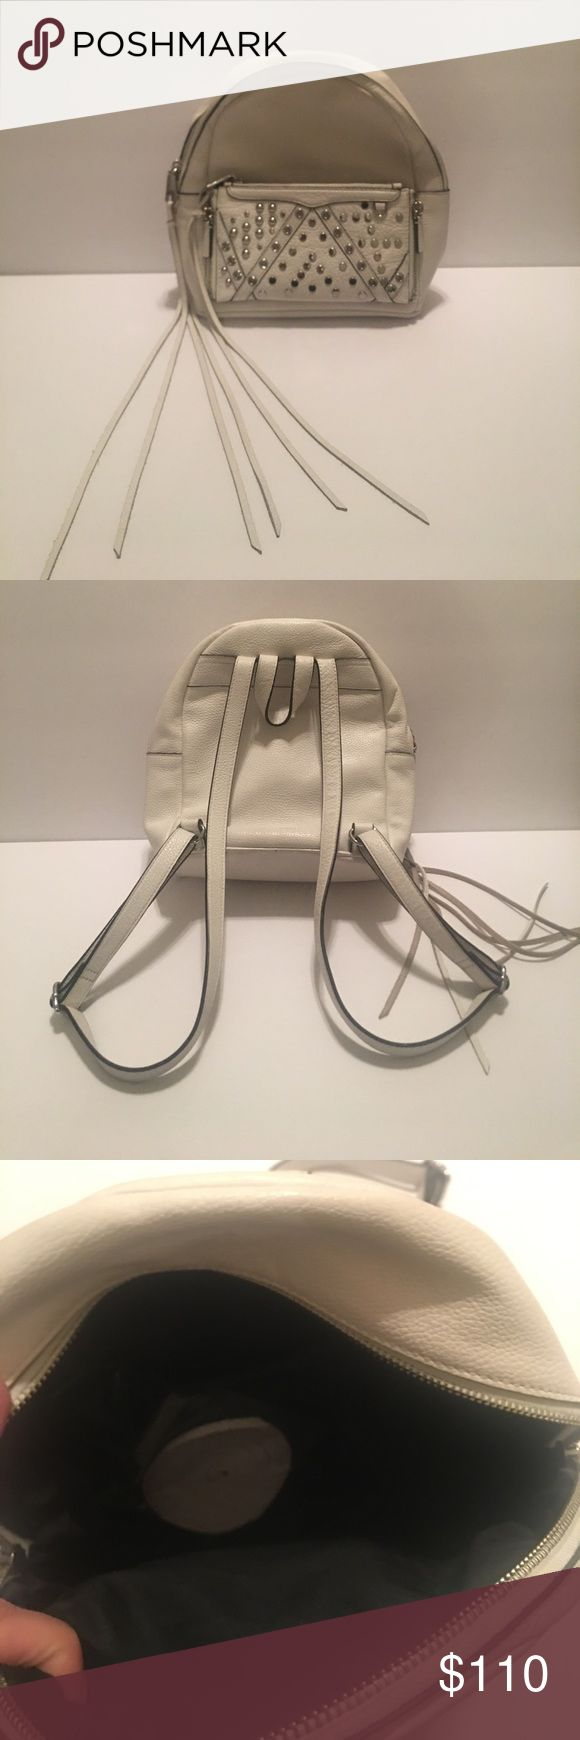 ❤️Rebecca Minkoff mini Lola backpack New with a little wear on bottom, hardly noticeable!!! Super cute mini Lola white and silver backpack with extra leather strings and reversible front piece that can turn into a wallet that attaches around your wrist!!! 👍🏻❤ 100% authentic Rebecca Minkoff Bags